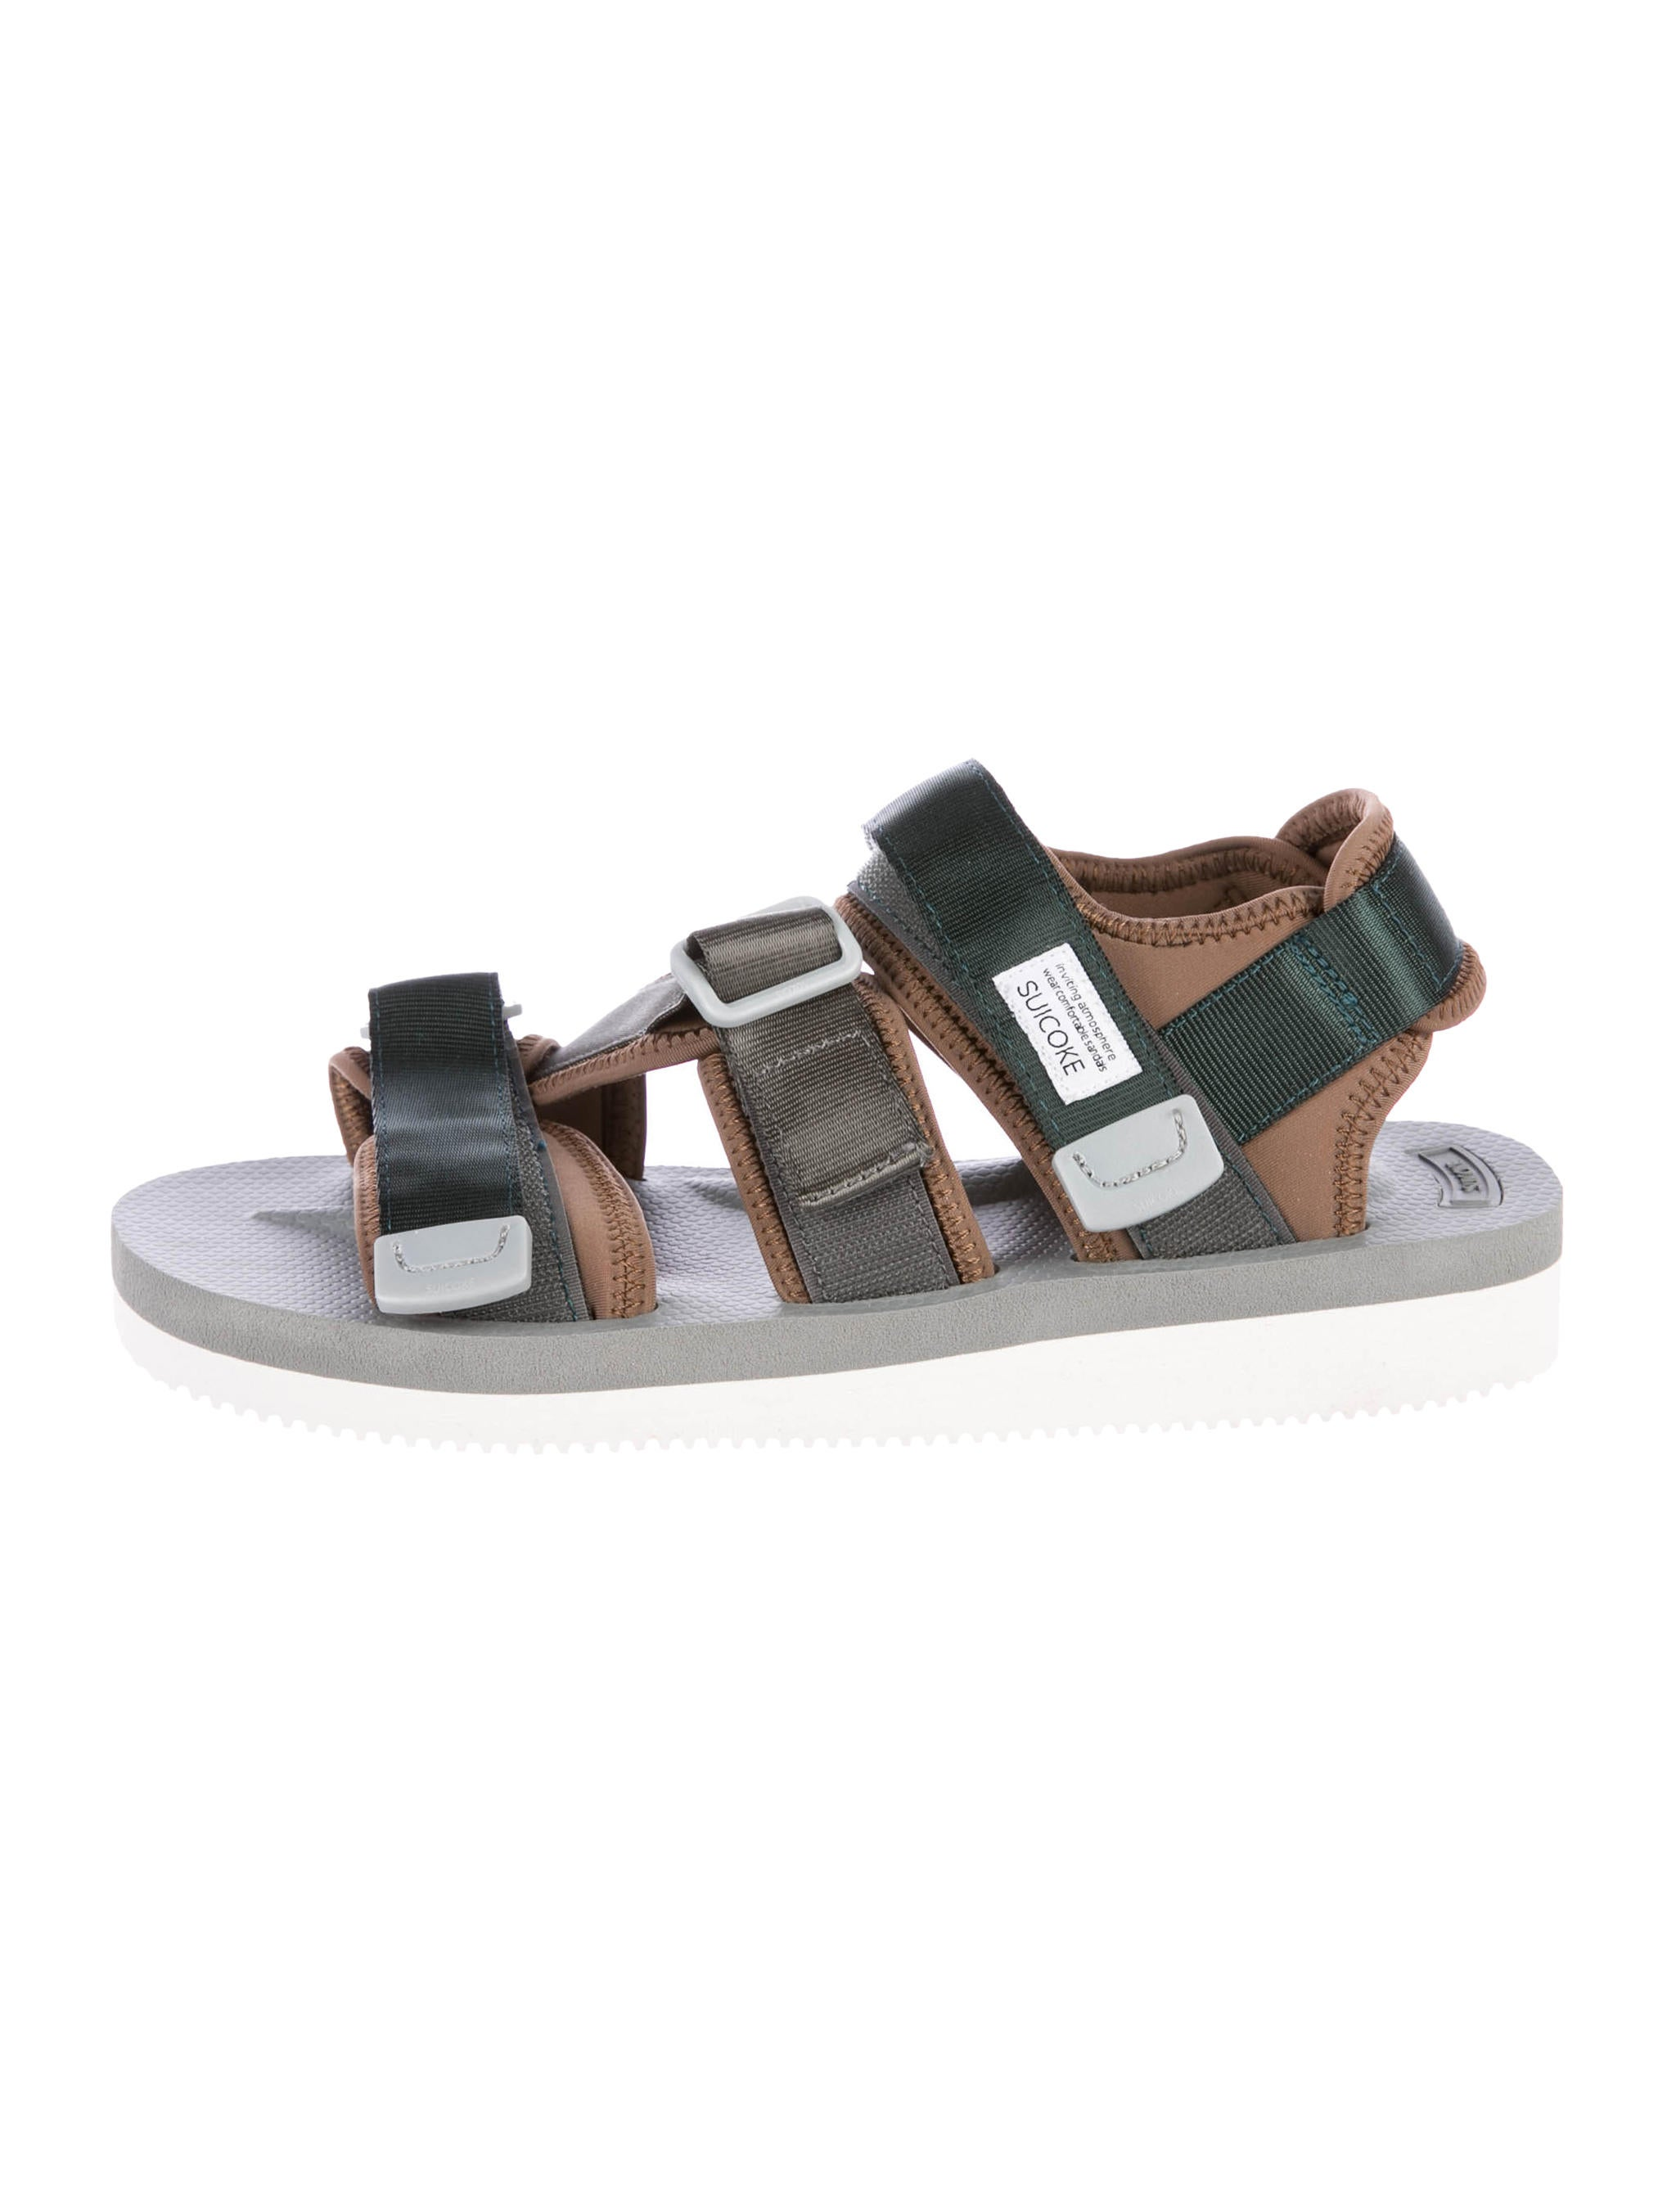 Suicoke Woven Ankle Strap Sandals quality from china wholesale cheap fast delivery free shipping big discount buy cheap price buy cheap official site KDiss0z